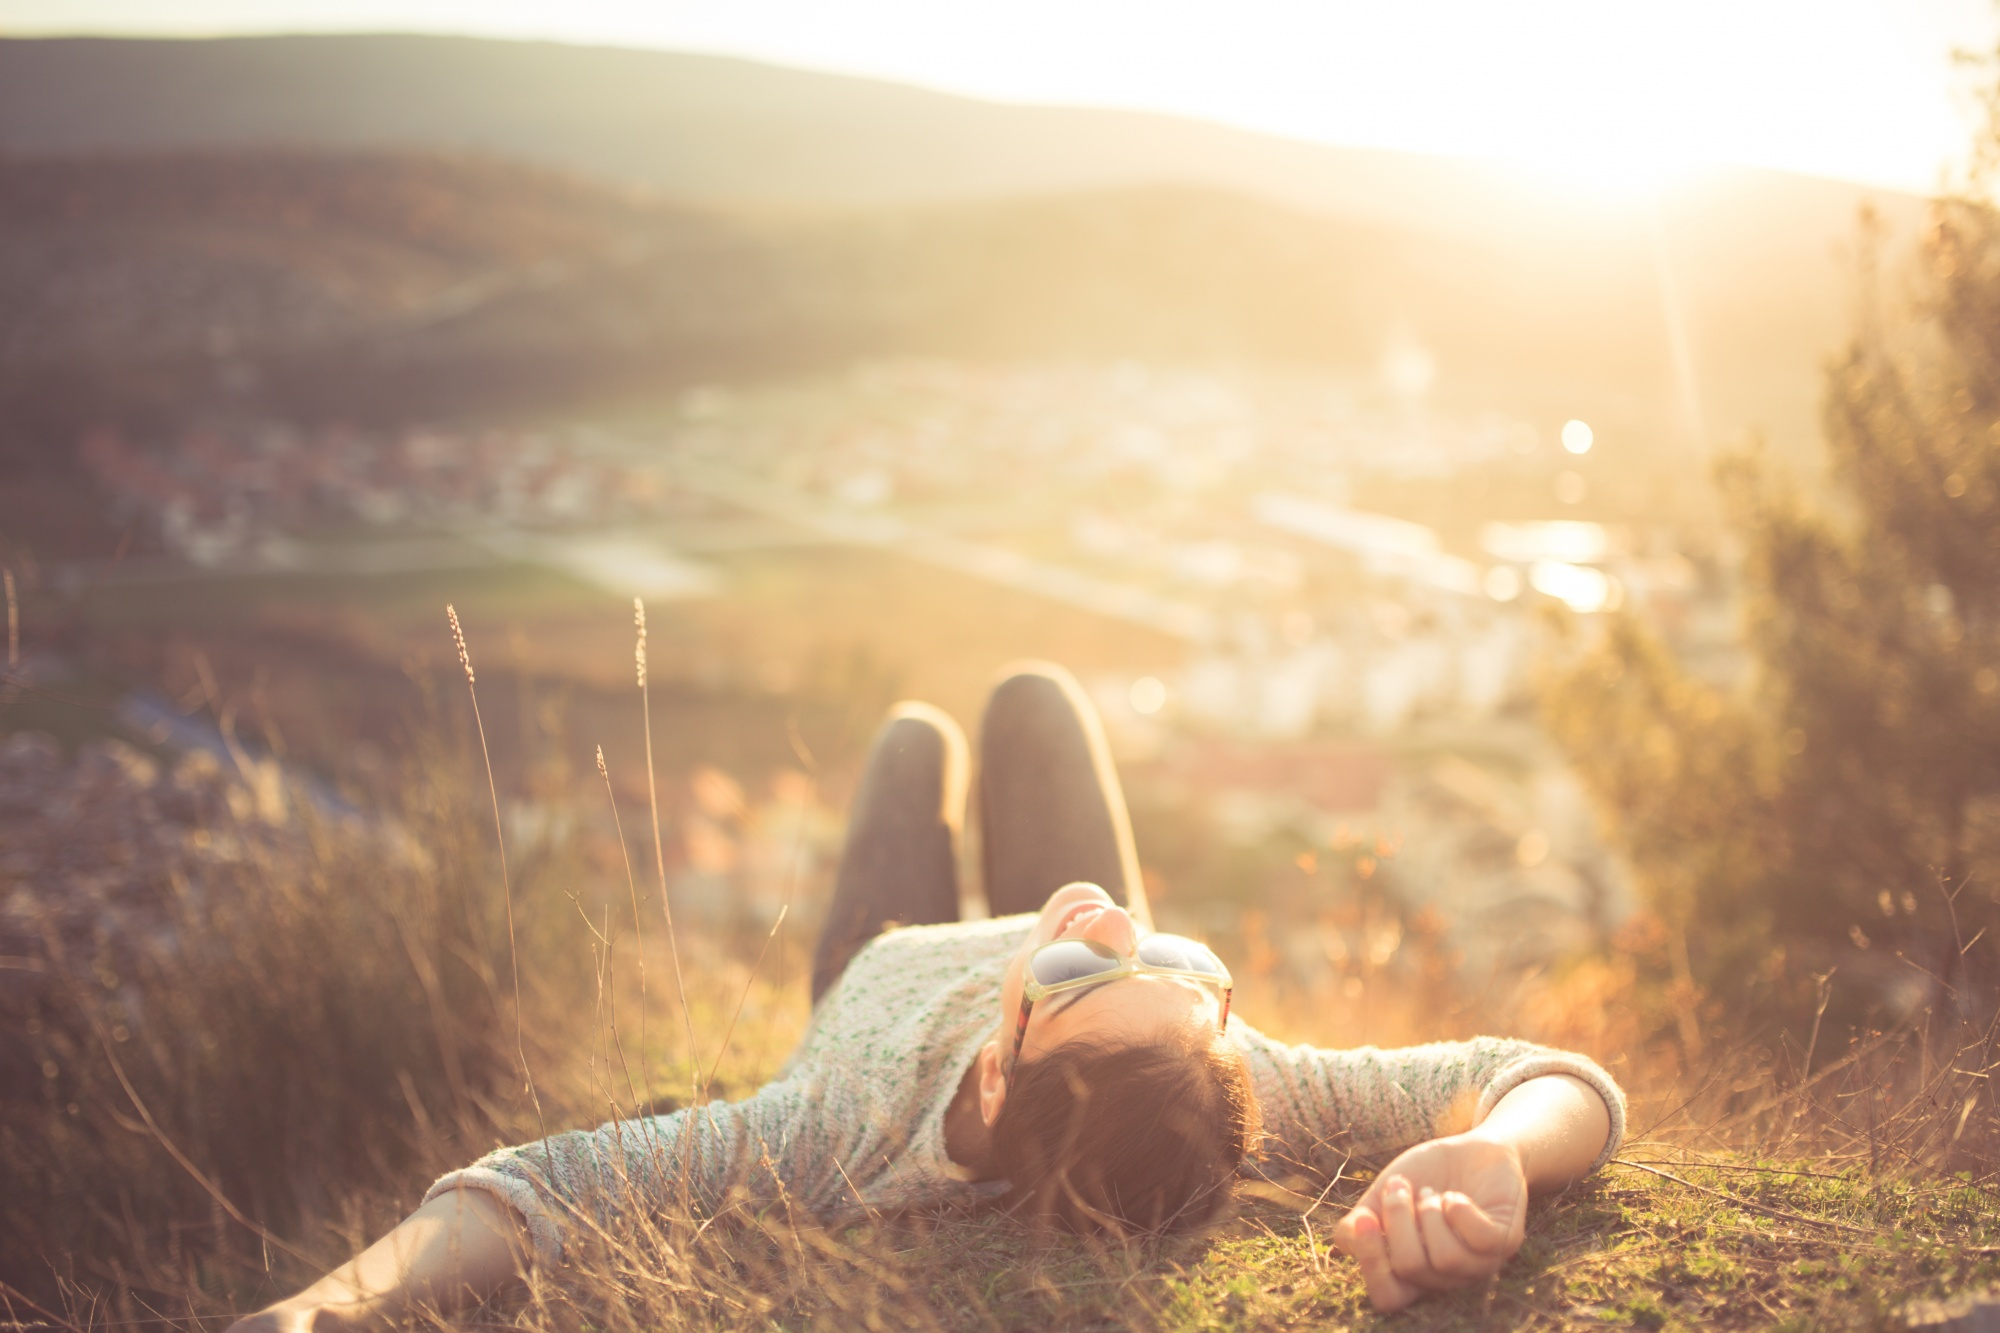 Woman laying on grass on hill above a town manifestation for beginners, manifesting your dream life